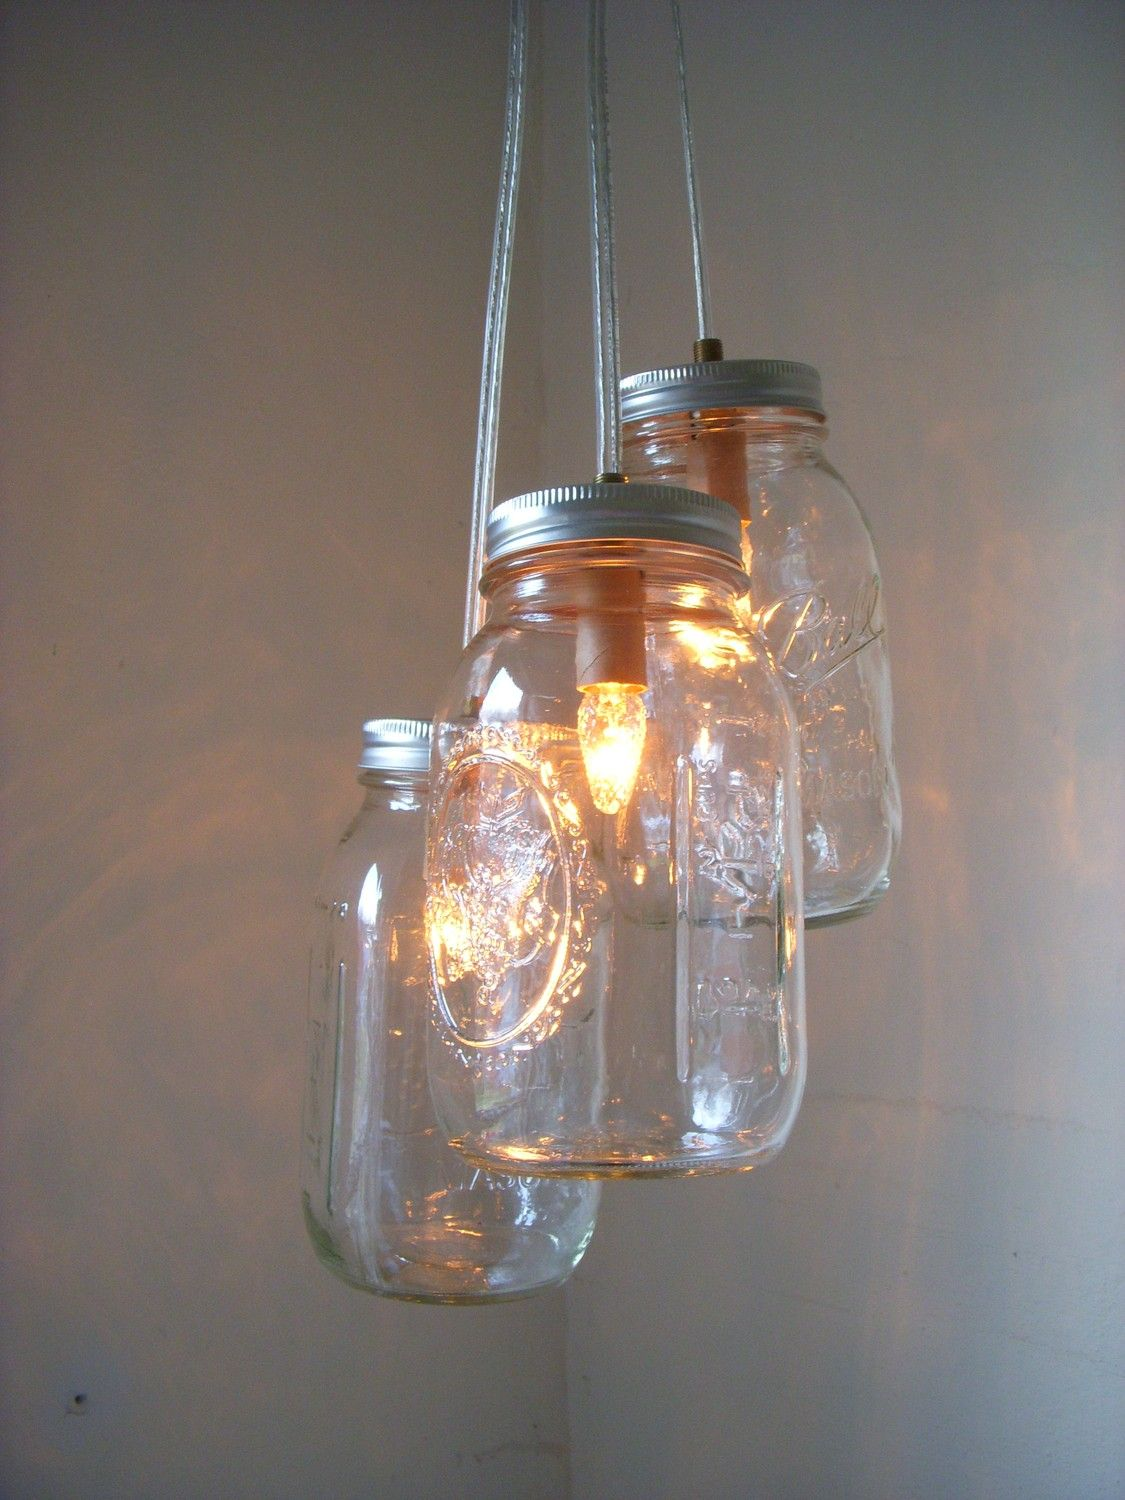 Country glow mason jar chandelier 3 quart jars handcrafted mason country glow mason jar chandelier hanging pendant by bootsngus 7000 arubaitofo Choice Image